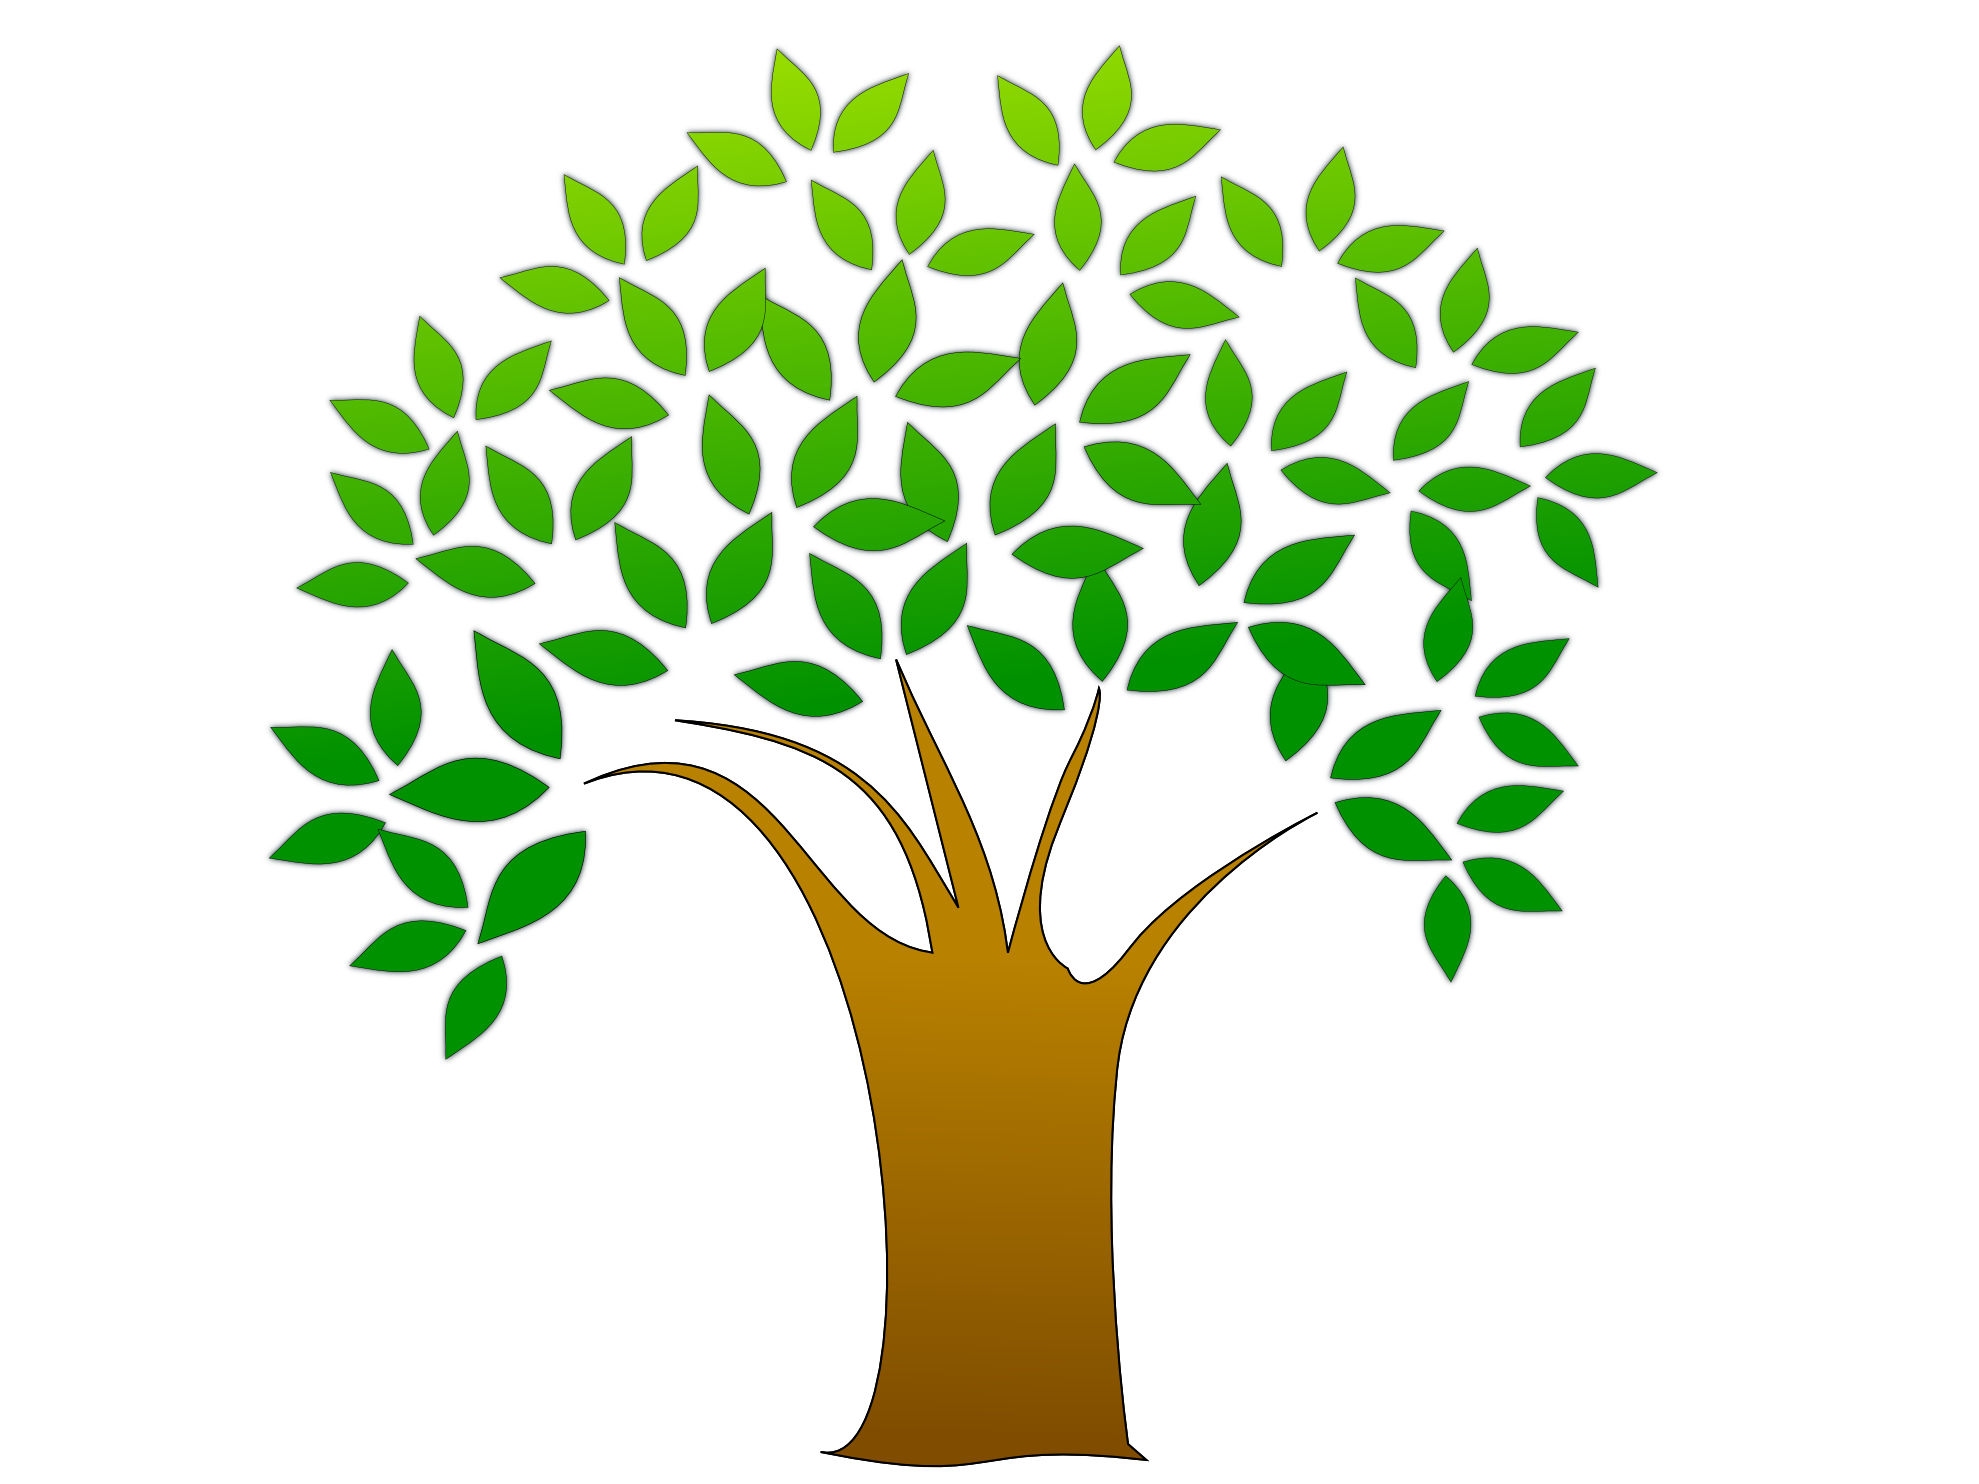 Trees Tree Png Free Images